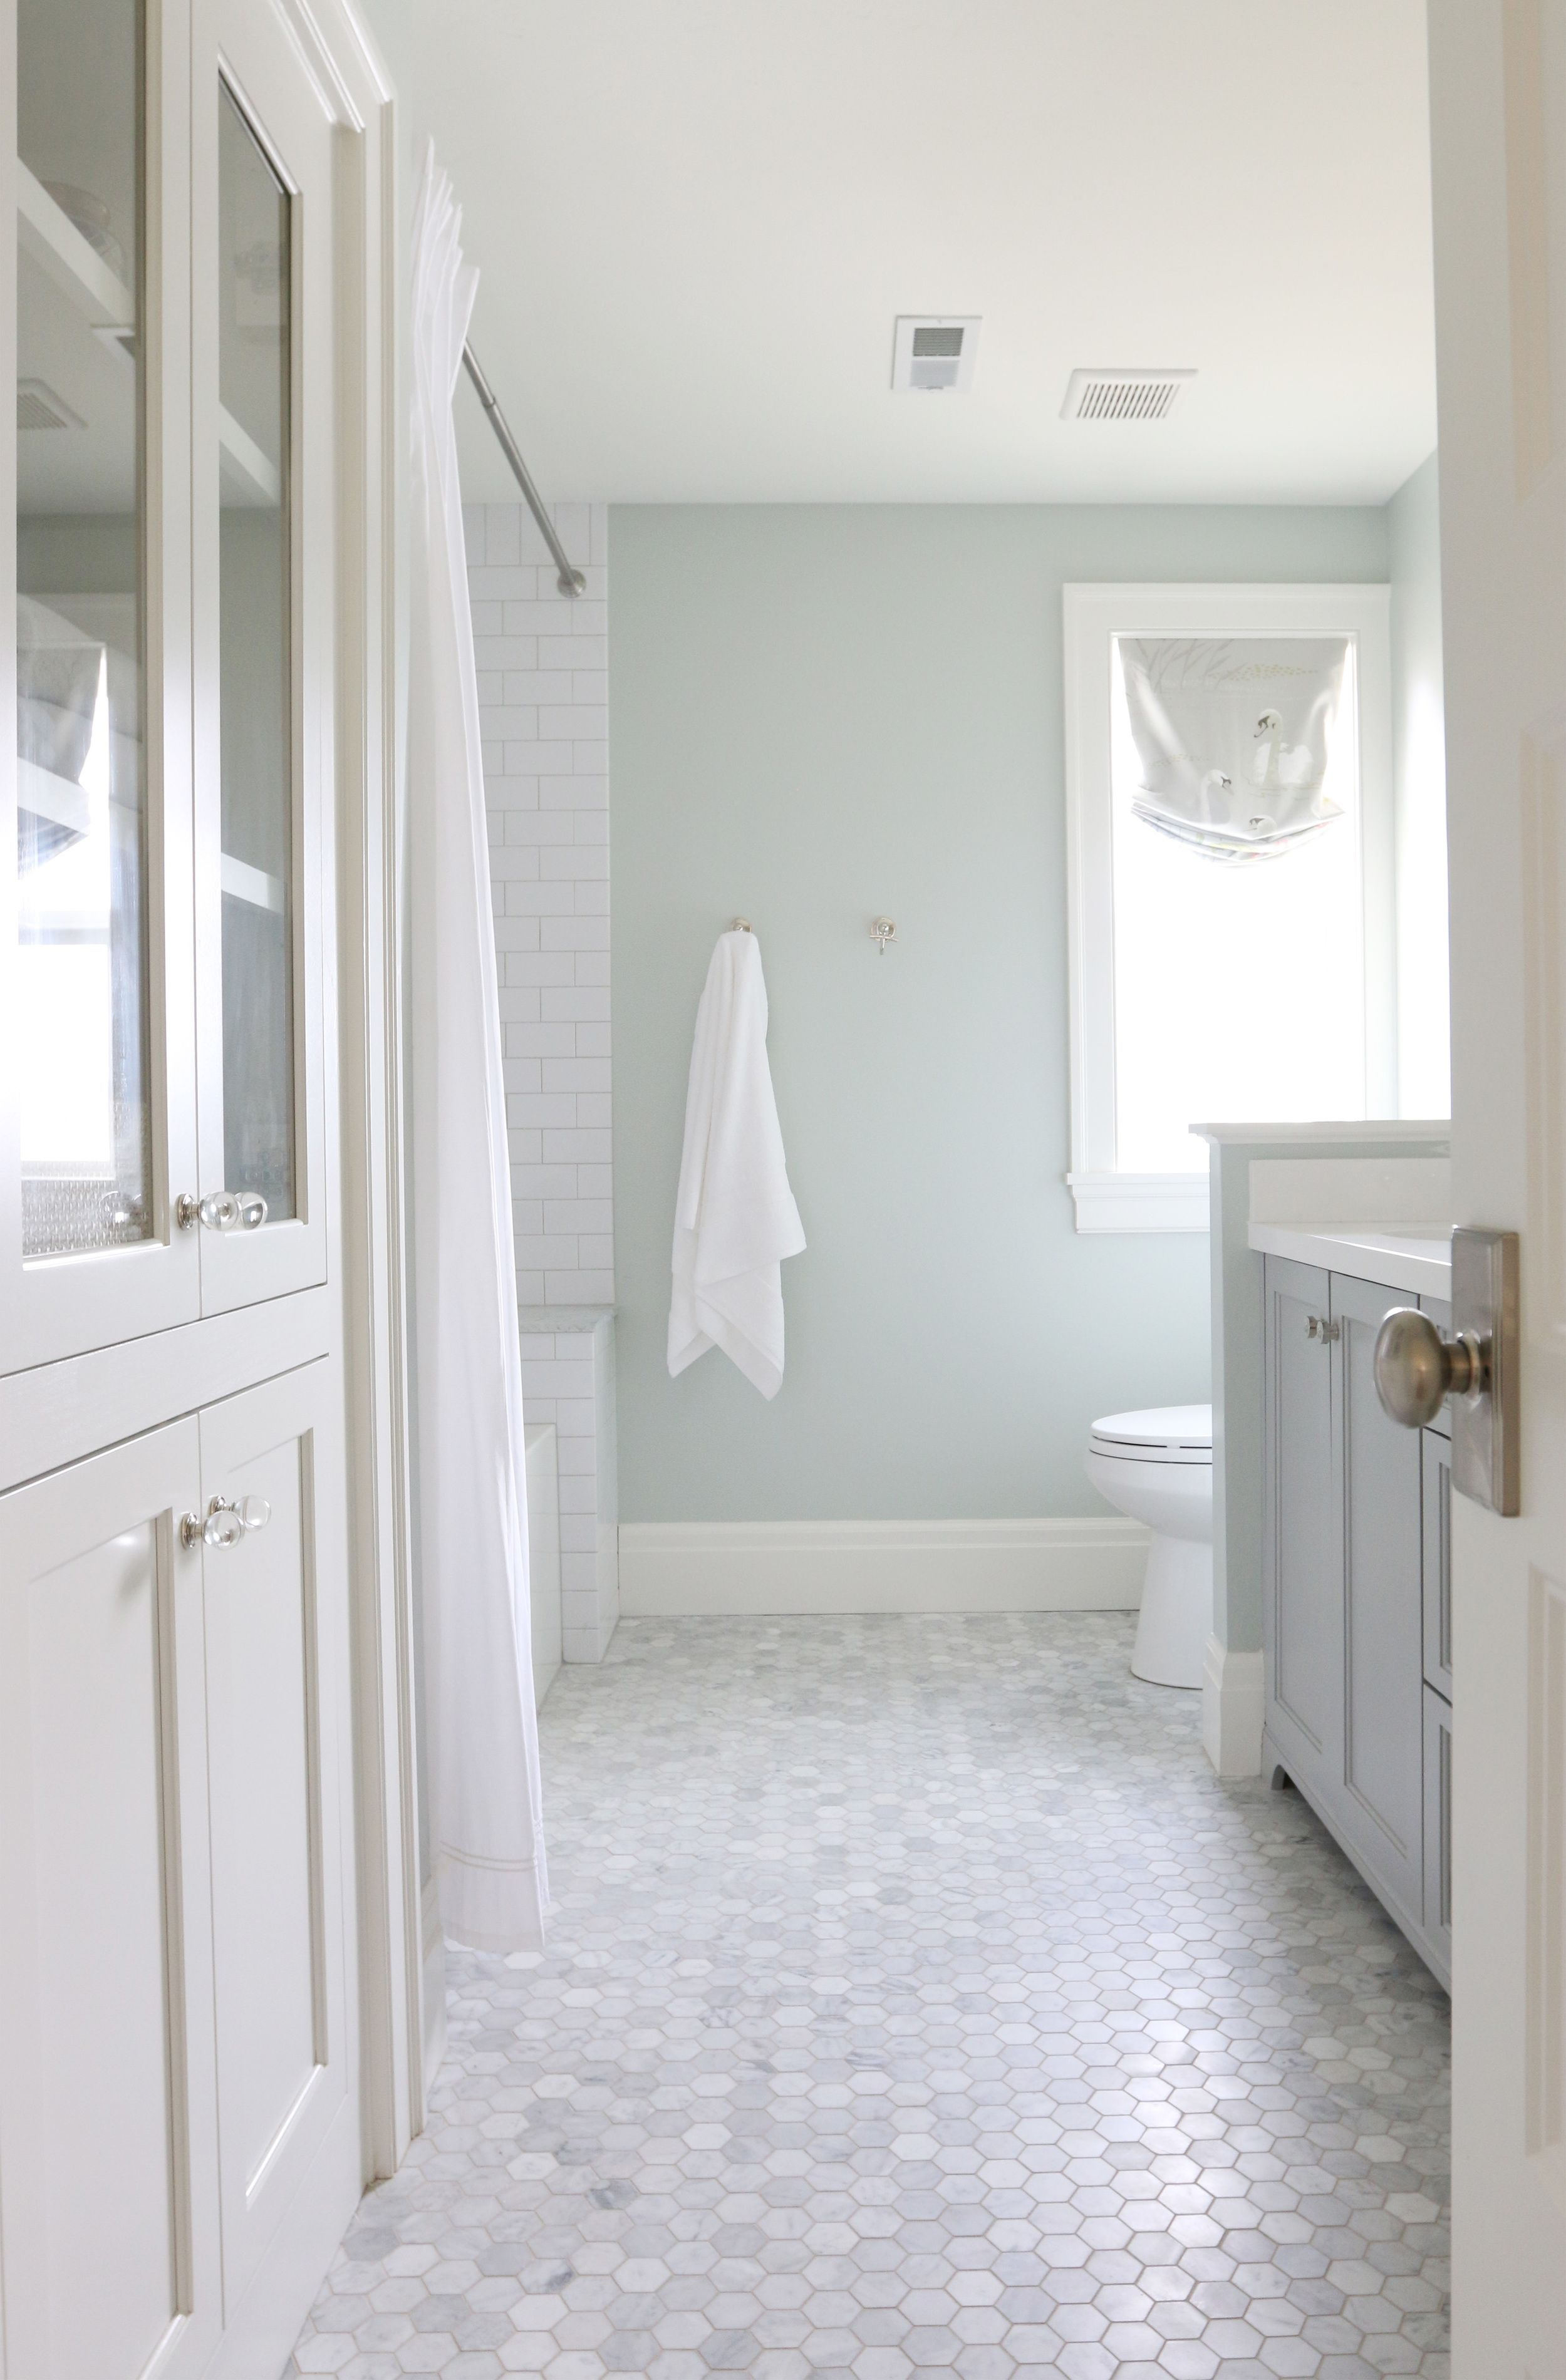 10 Under  10   Tile Flooring   Bathrooms   Pinterest   House     You can see the full tour of our Midway House project here